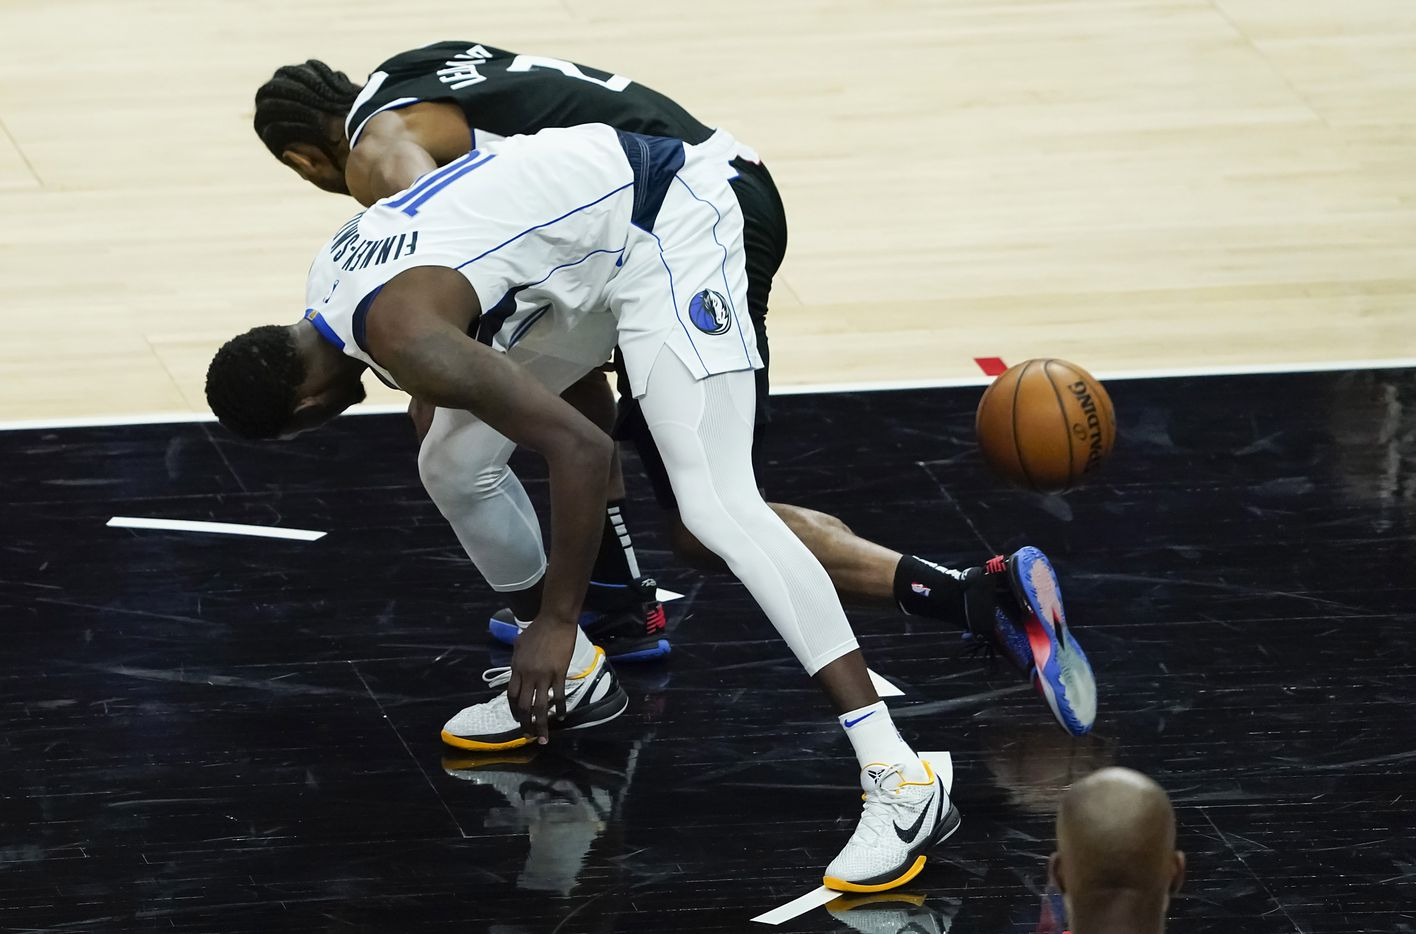 Dallas Mavericks forward Dorian Finney-Smith (10) knocks the ball away from LA Clippers forward Kawhi Leonard (2) during the fourth quarter of an NBA playoff basketball game at the Staples Center on Wednesday, June 2, 2021, in Los Angeles. The Mavericks won the game 105-100. (Smiley N. Pool/The Dallas Morning News)